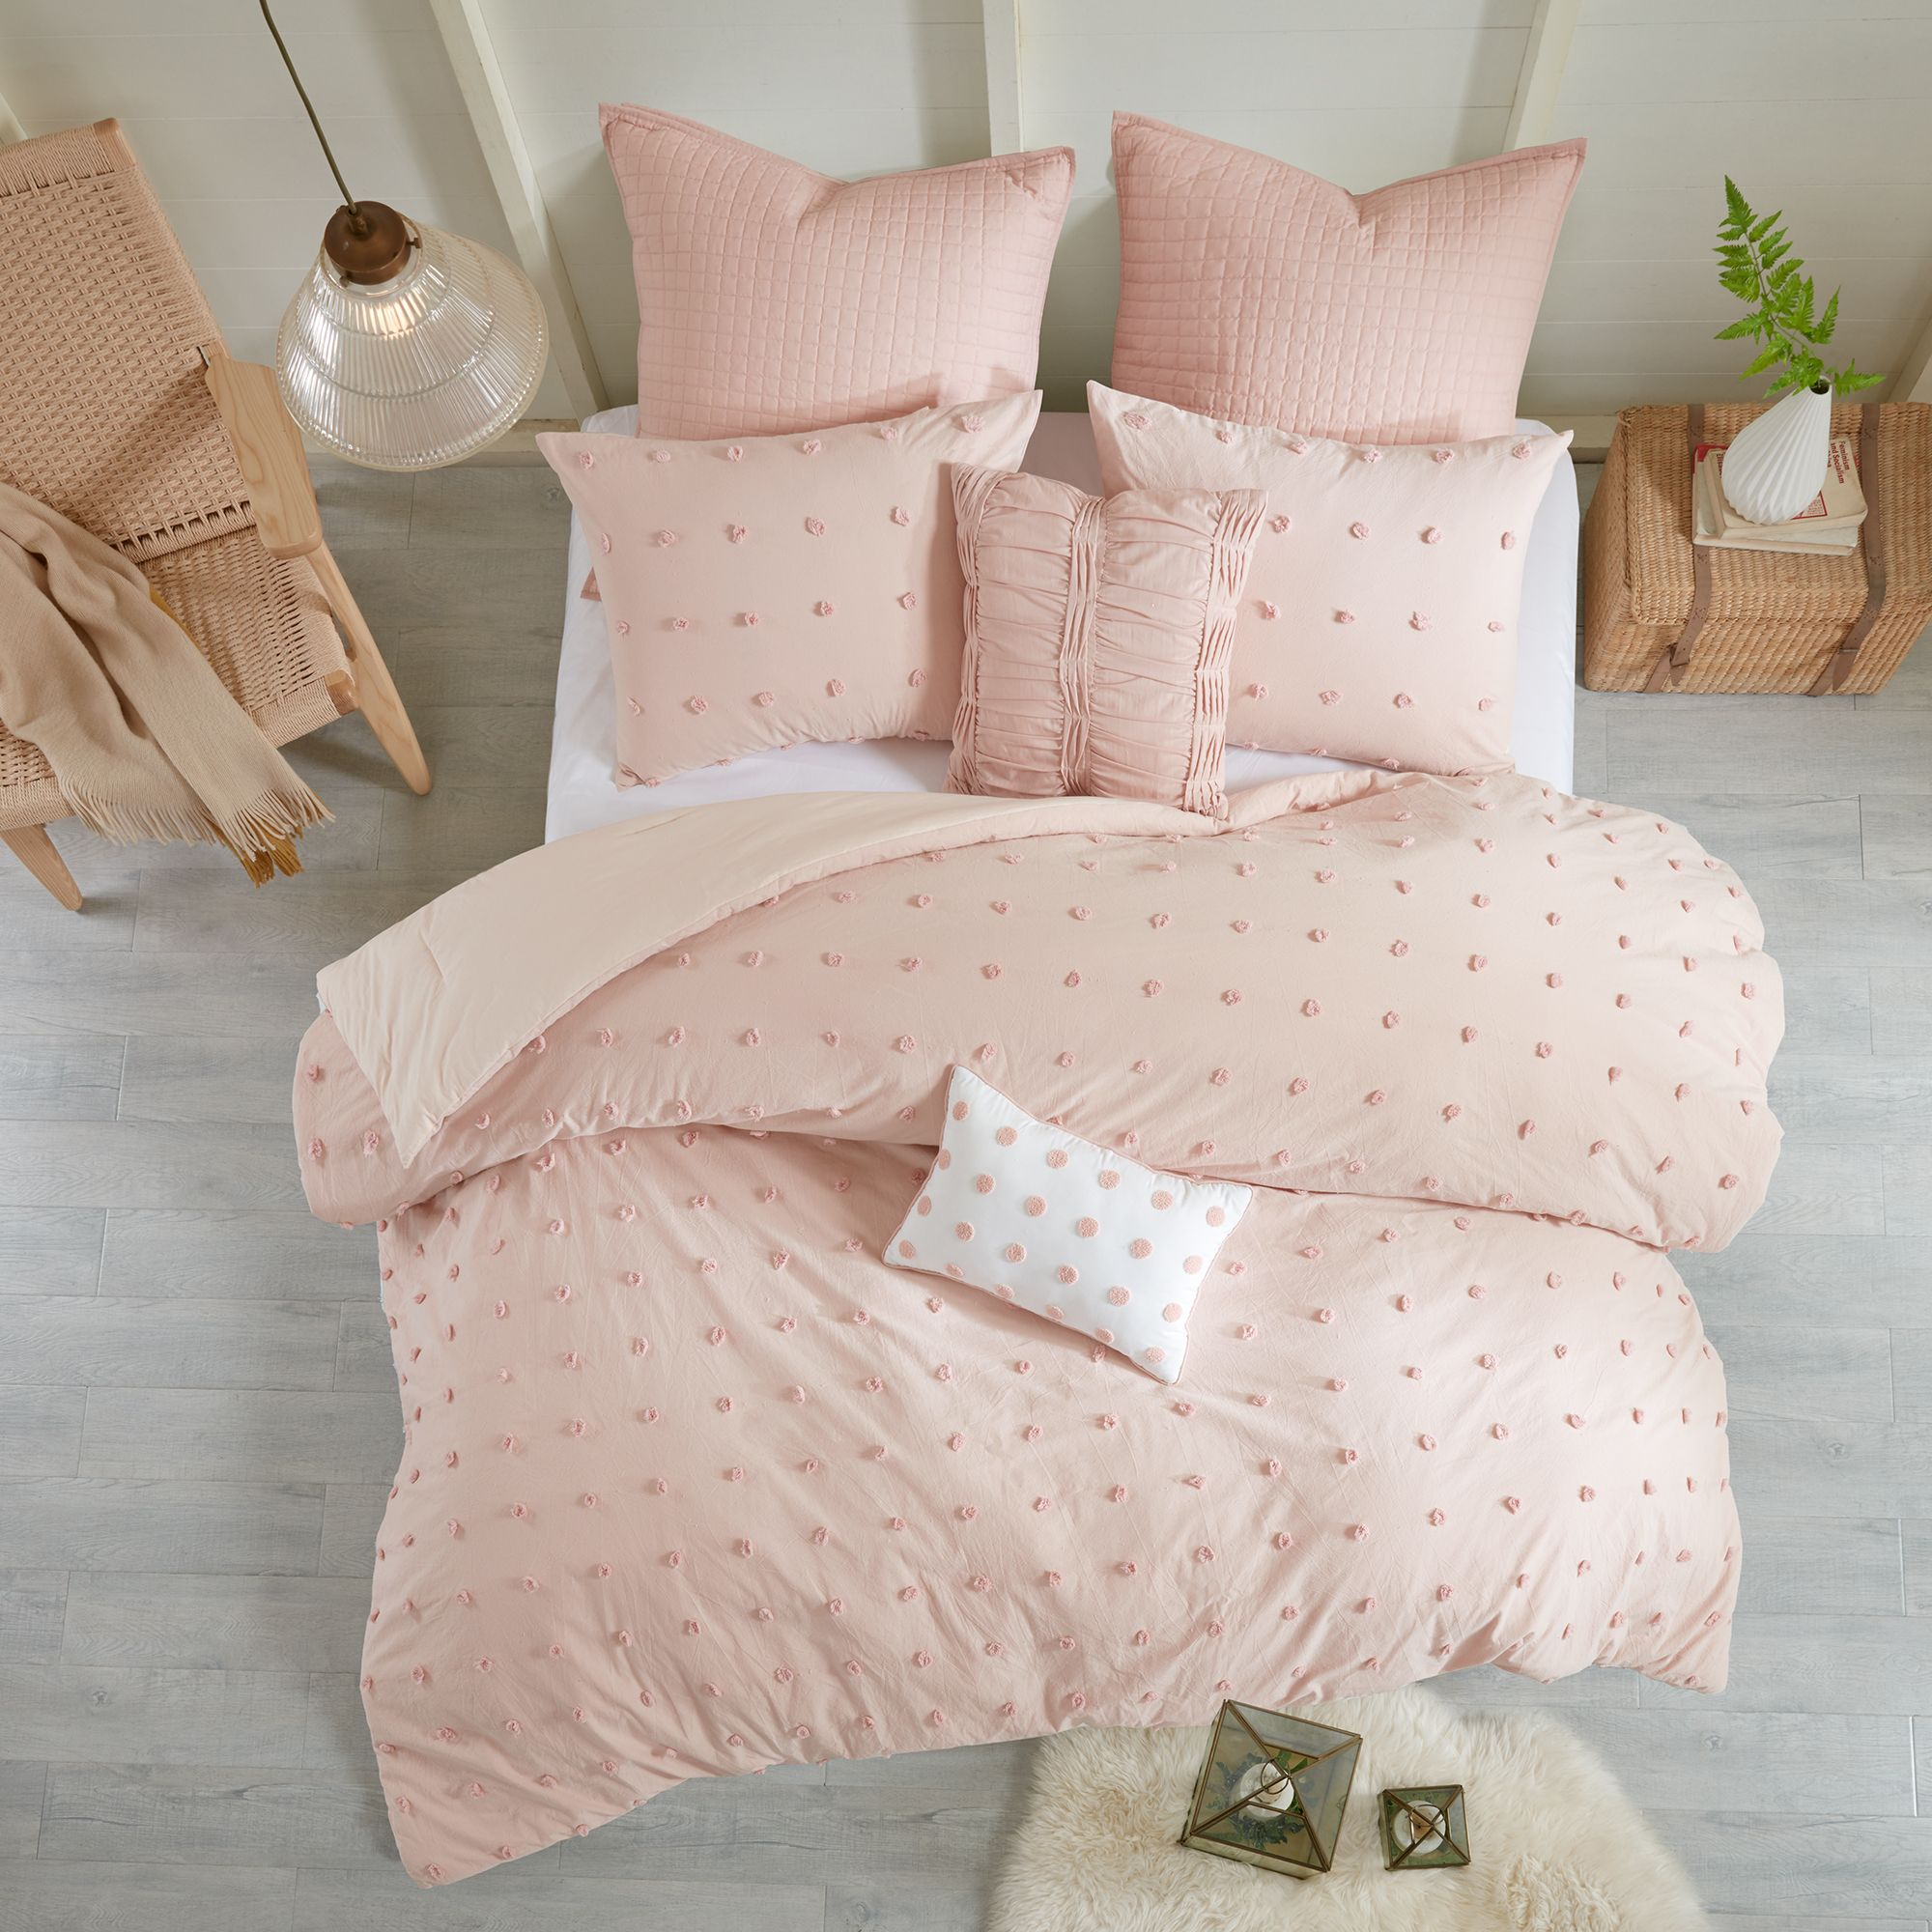 Home (With images) Duvet cover sets, Pink bedding